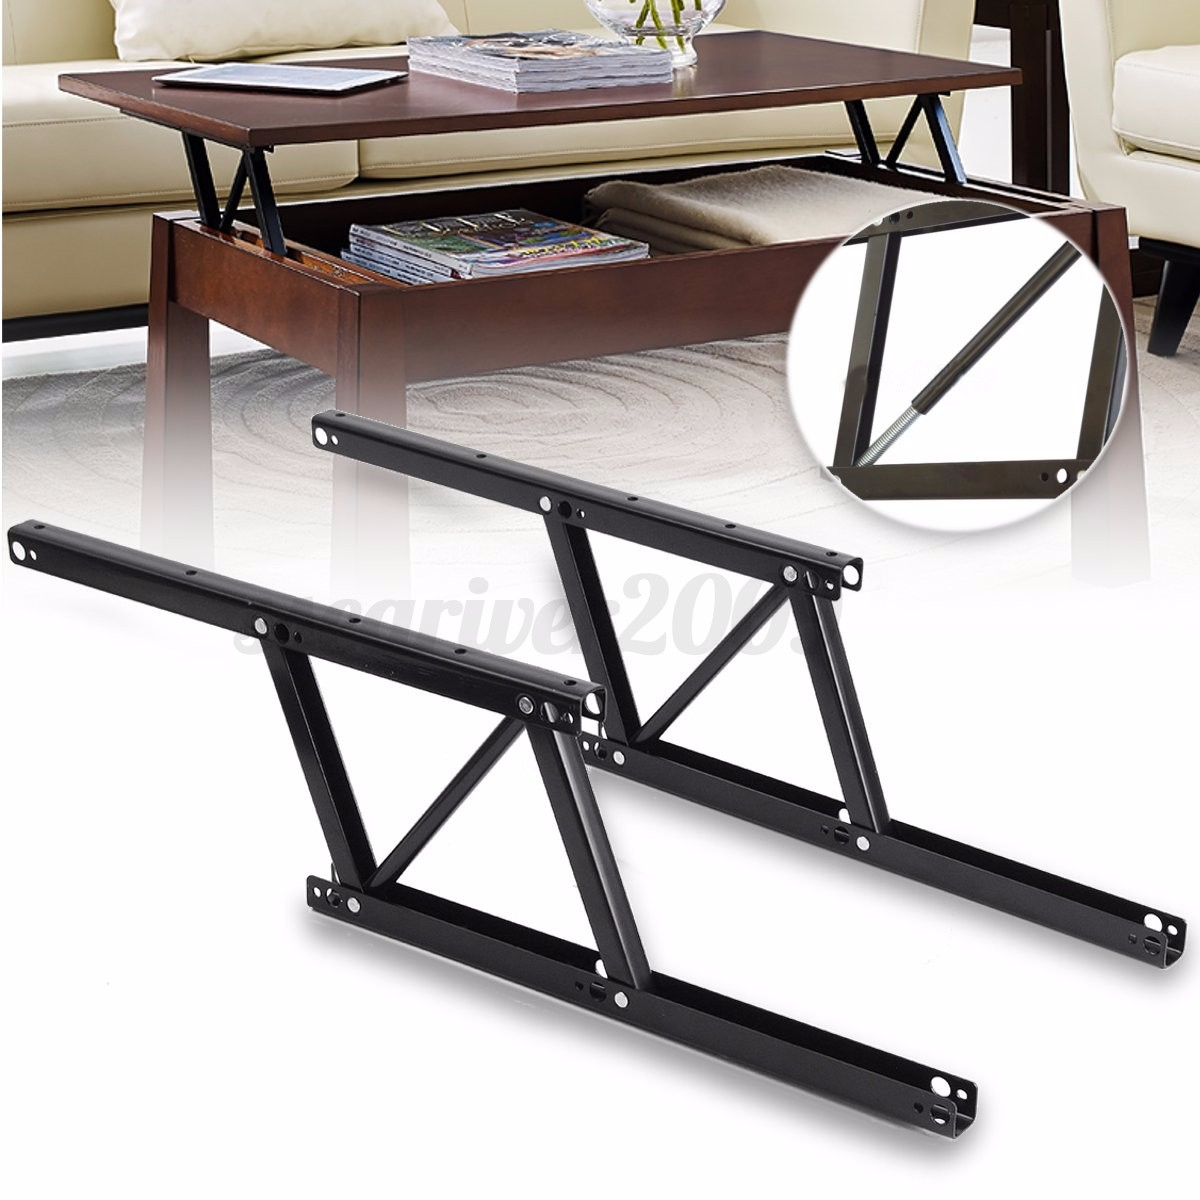 1pair lift up top coffee table sofa bed frame furniture mechanism 1pair lift up top coffee table sofa bed geotapseo Choice Image